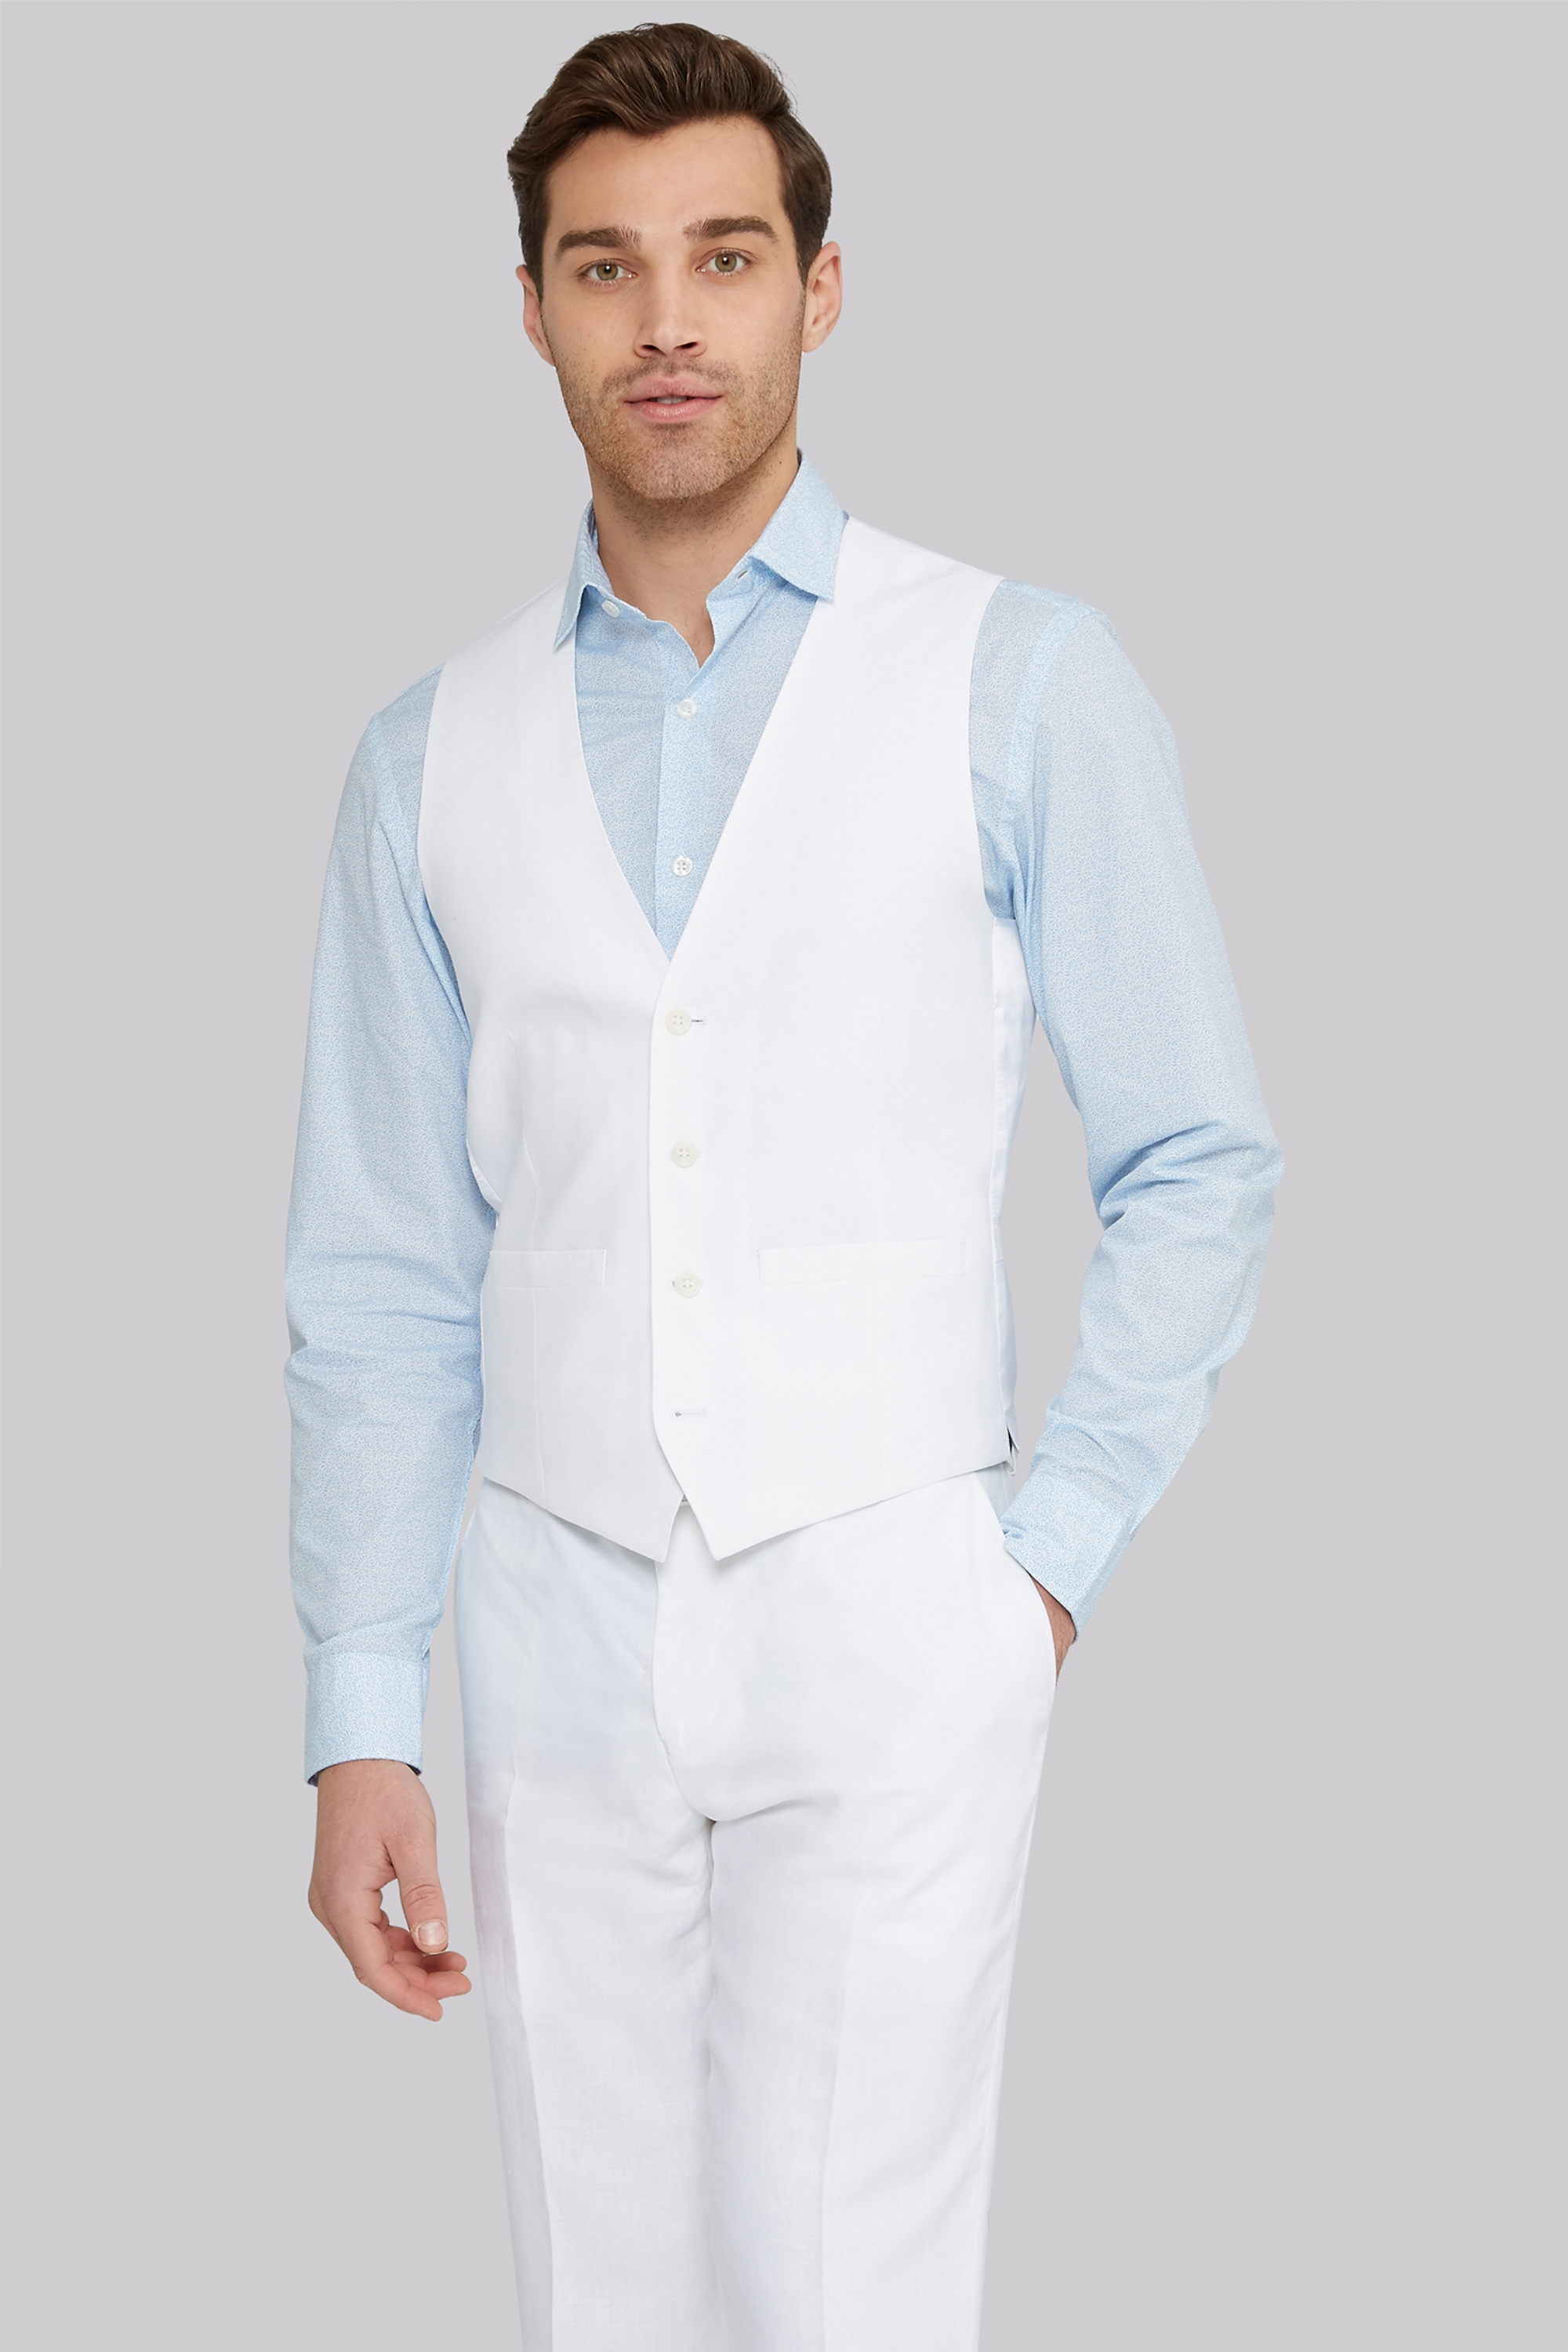 High quality, professional white lab coats for doctors and nurses available in tailored styles for both men and women. Free shipping & returns, easy online ordering. Free Shipping / Free Returns. 0. 0. Our collection of professional white lab coats and jackets provides a premium option for medical staff in every specialty, in every body.